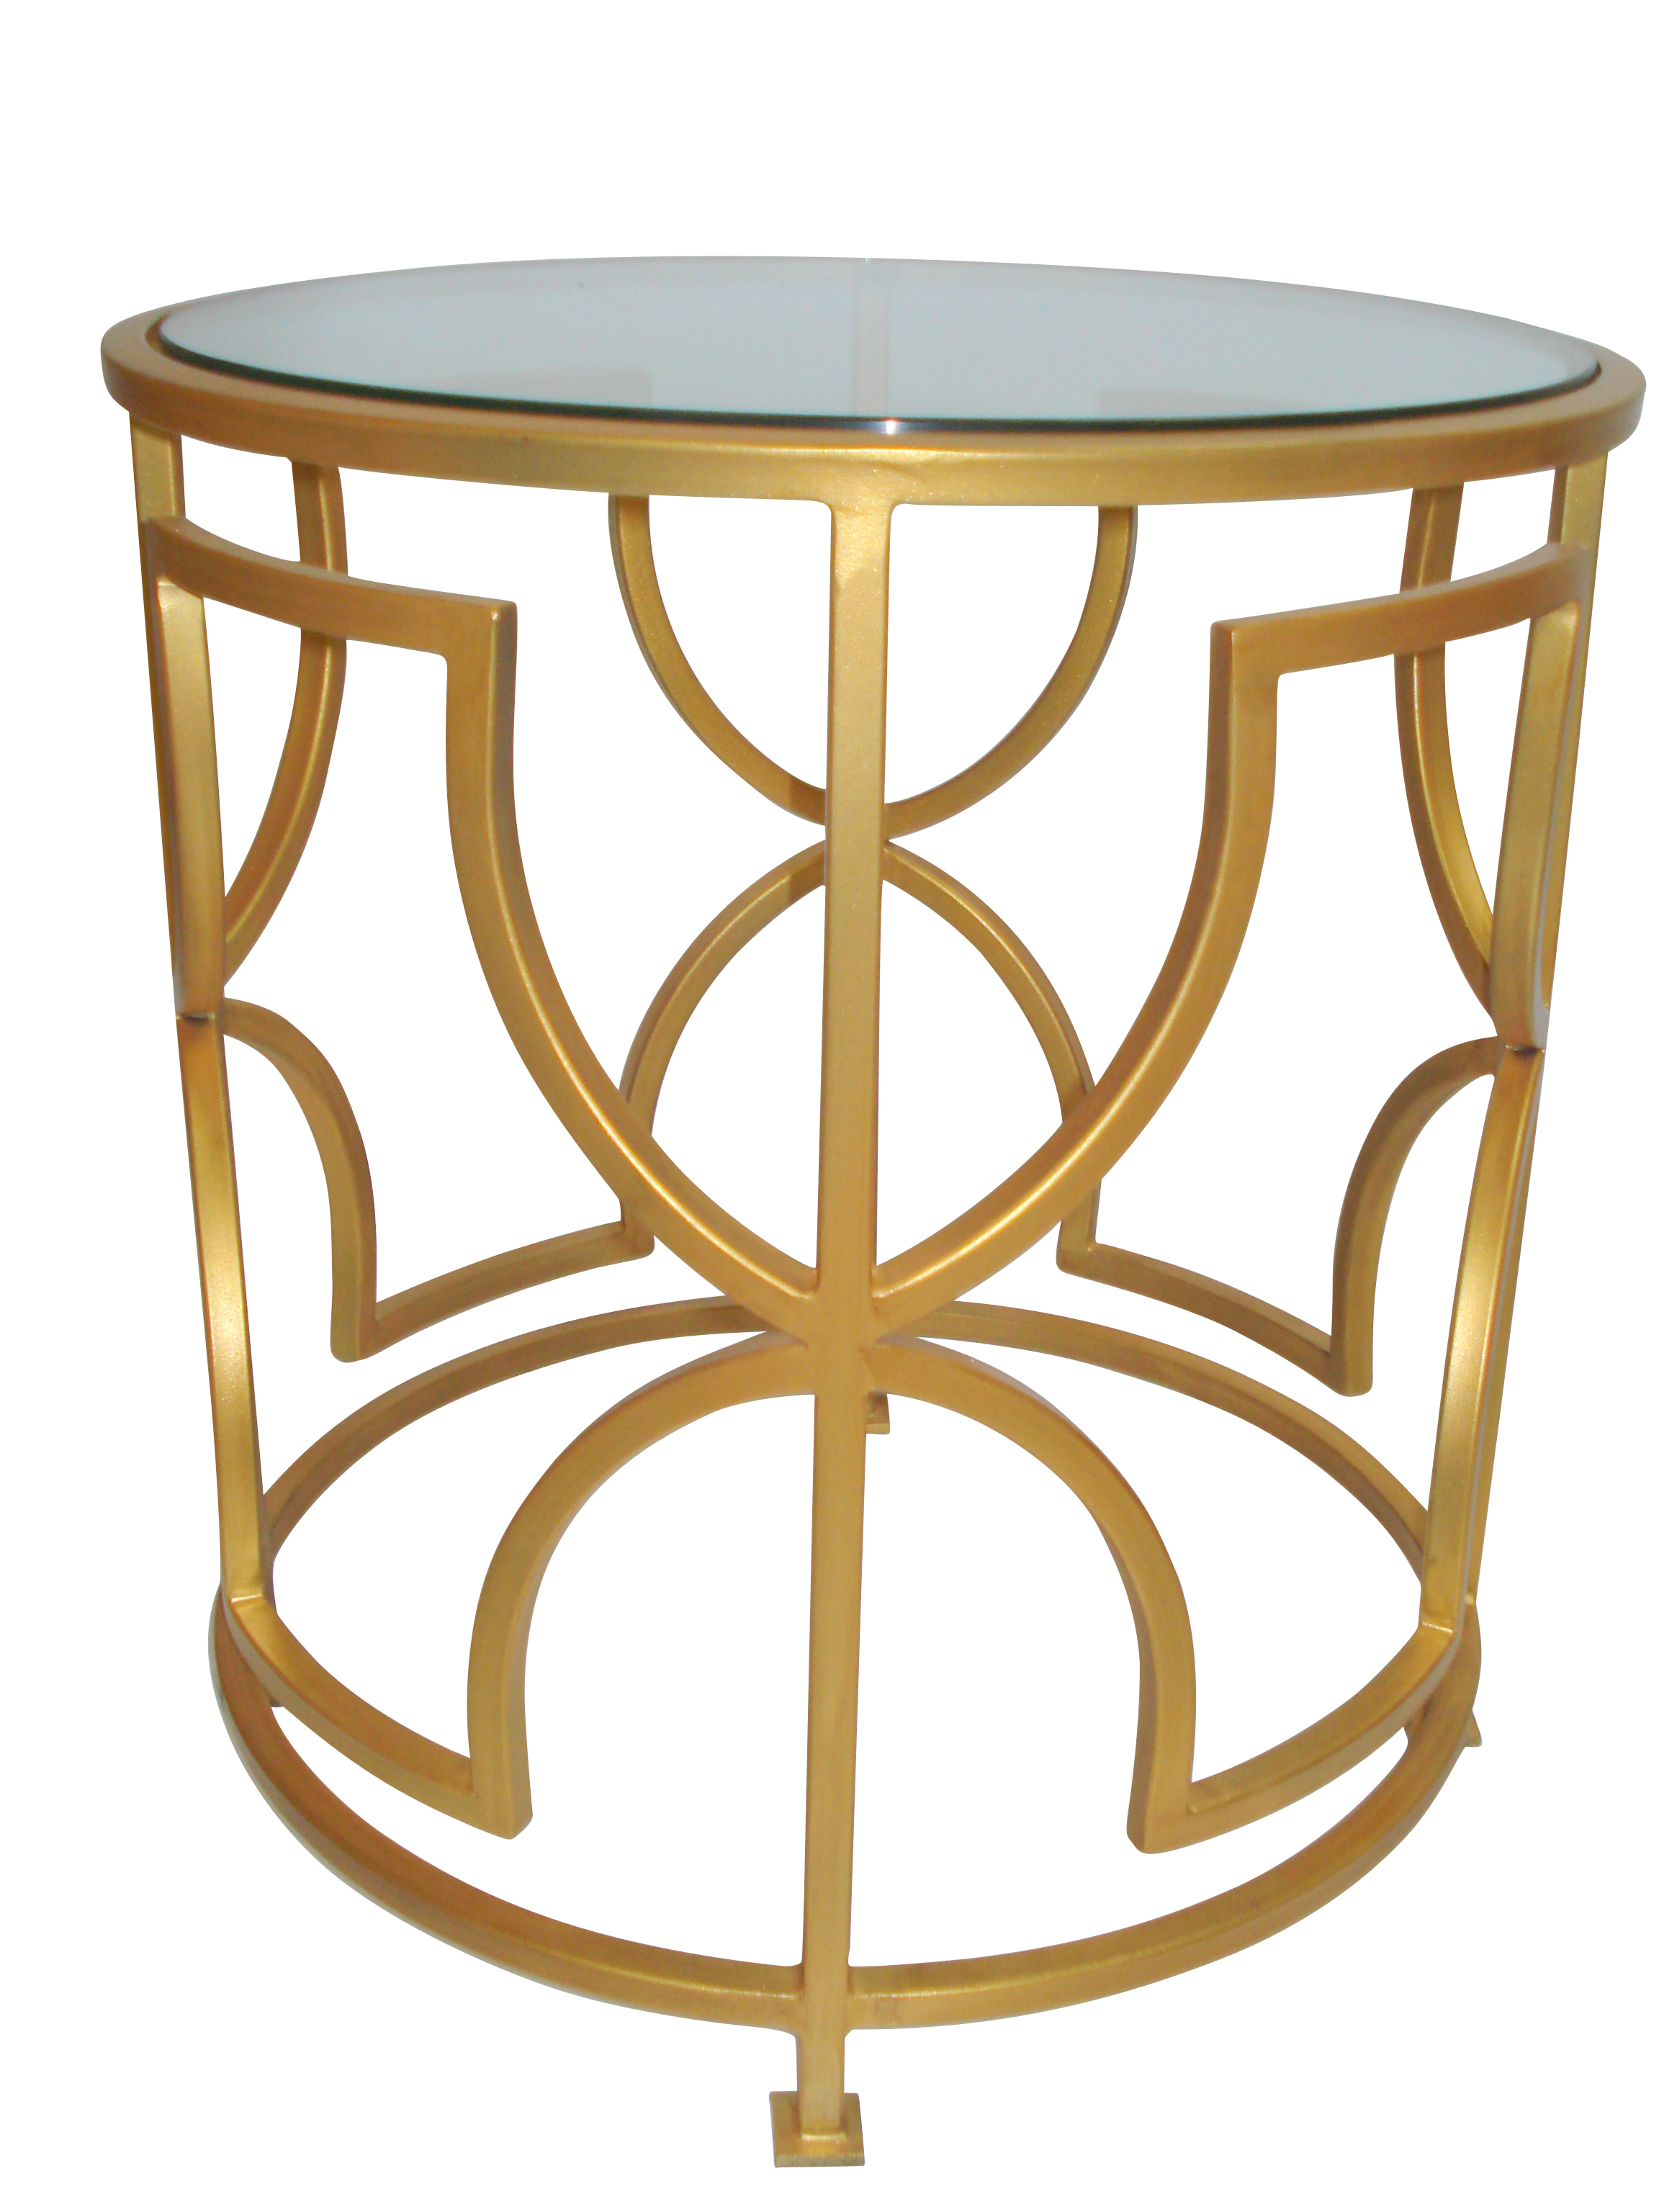 Killarney tempered glass side table